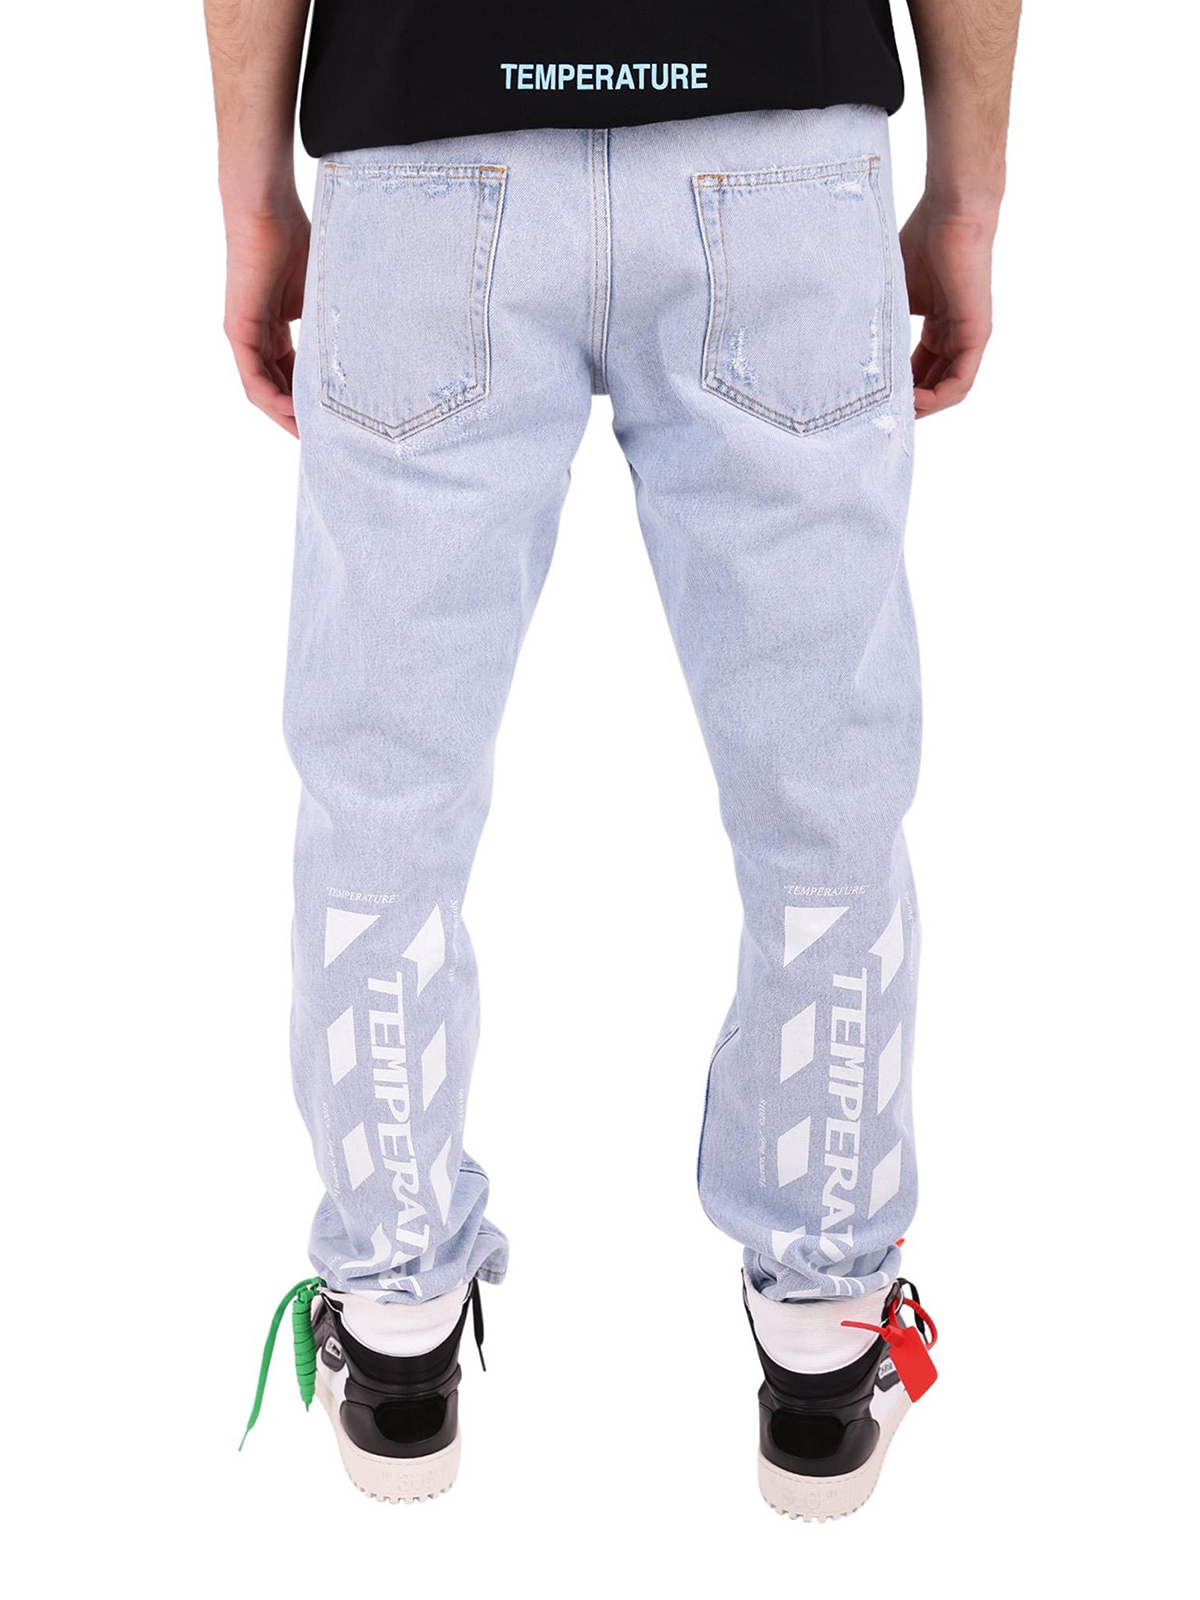 ac70aabfc673 iKRIX OFF-WHITE  straight leg jeans - Temperature jeans